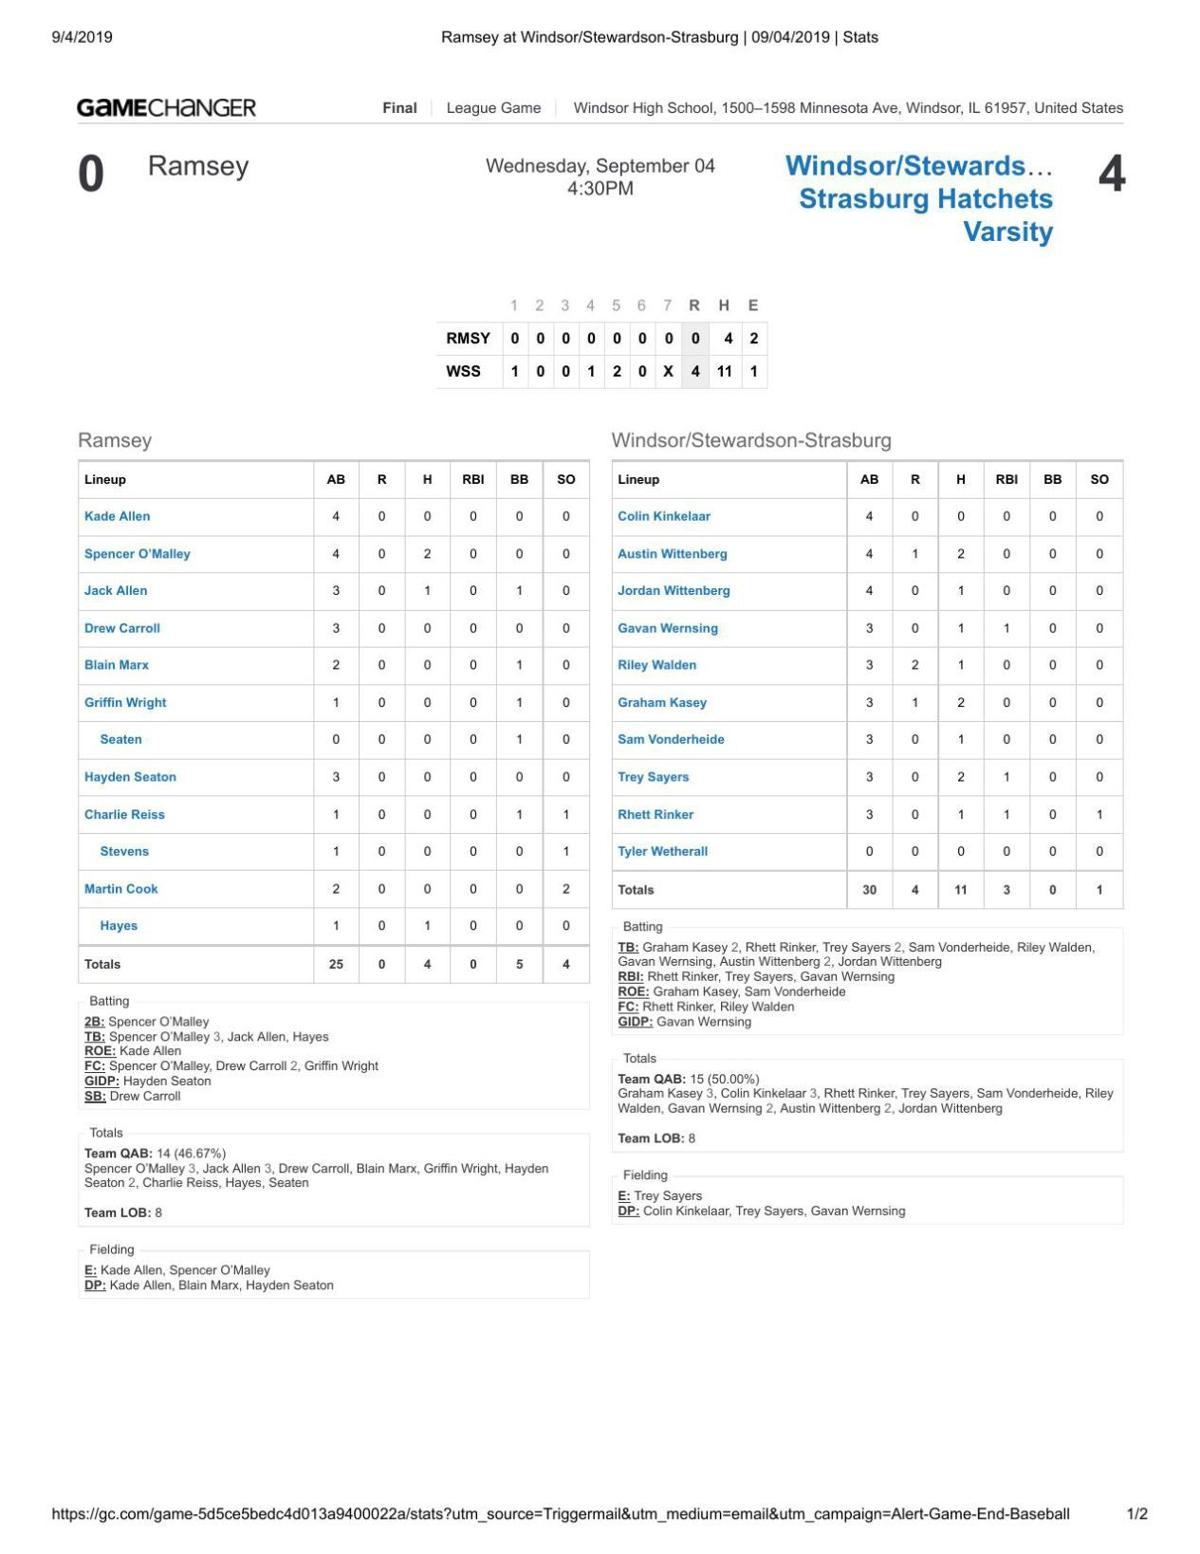 Baseball: Windsor/Stewardson-Strasburg 4, Ramsey 0